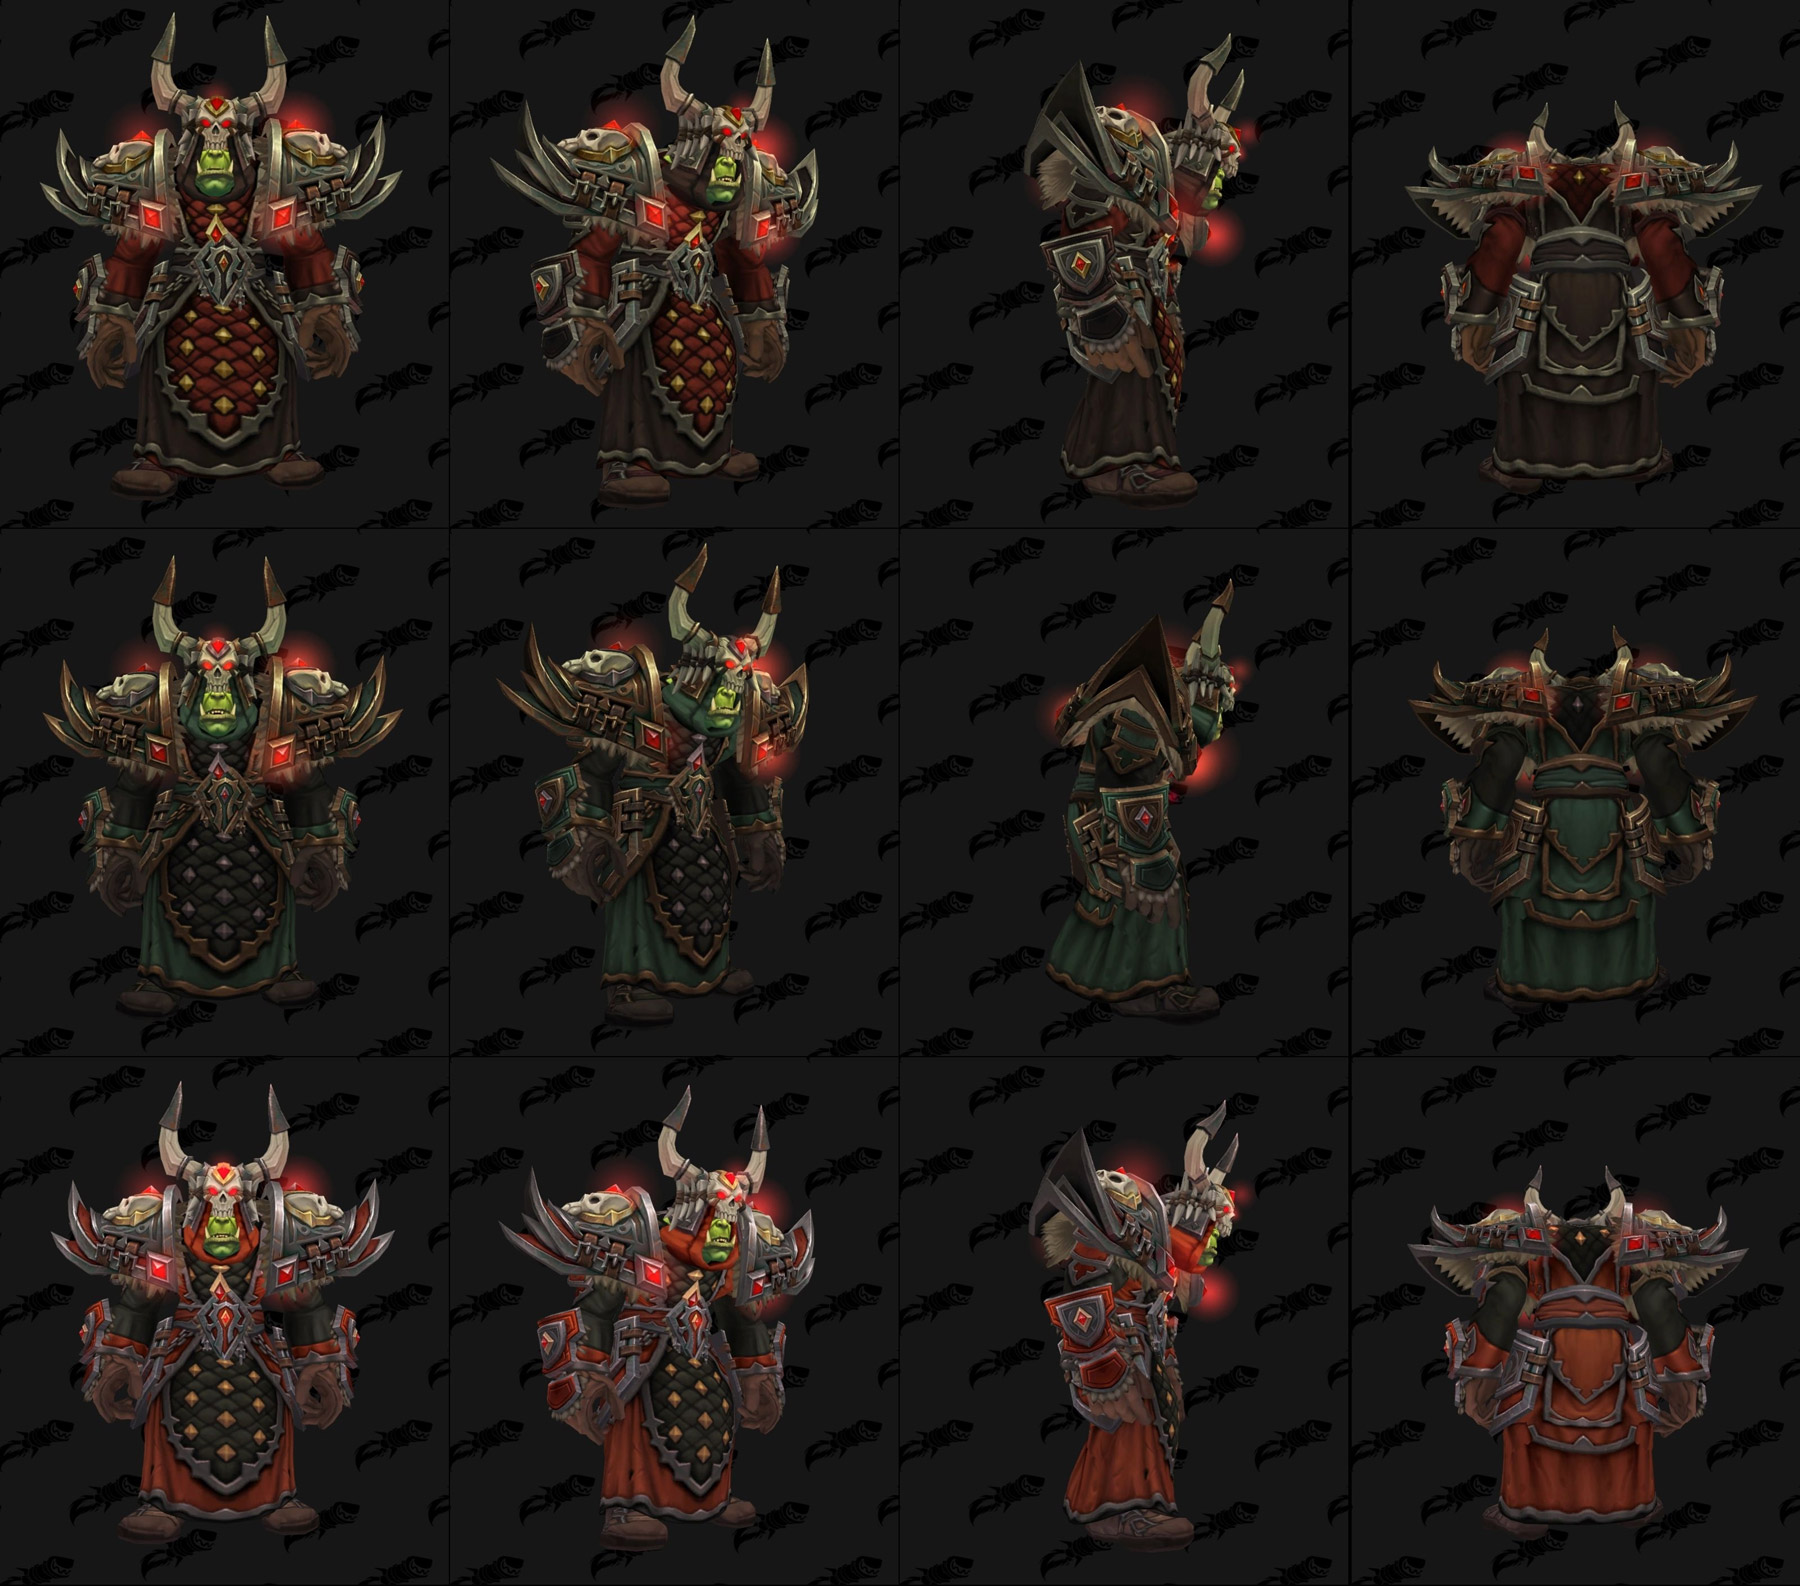 Ensembles Front de guerre (Horde) en tissu - Tier 3 - Battle for Azeroth